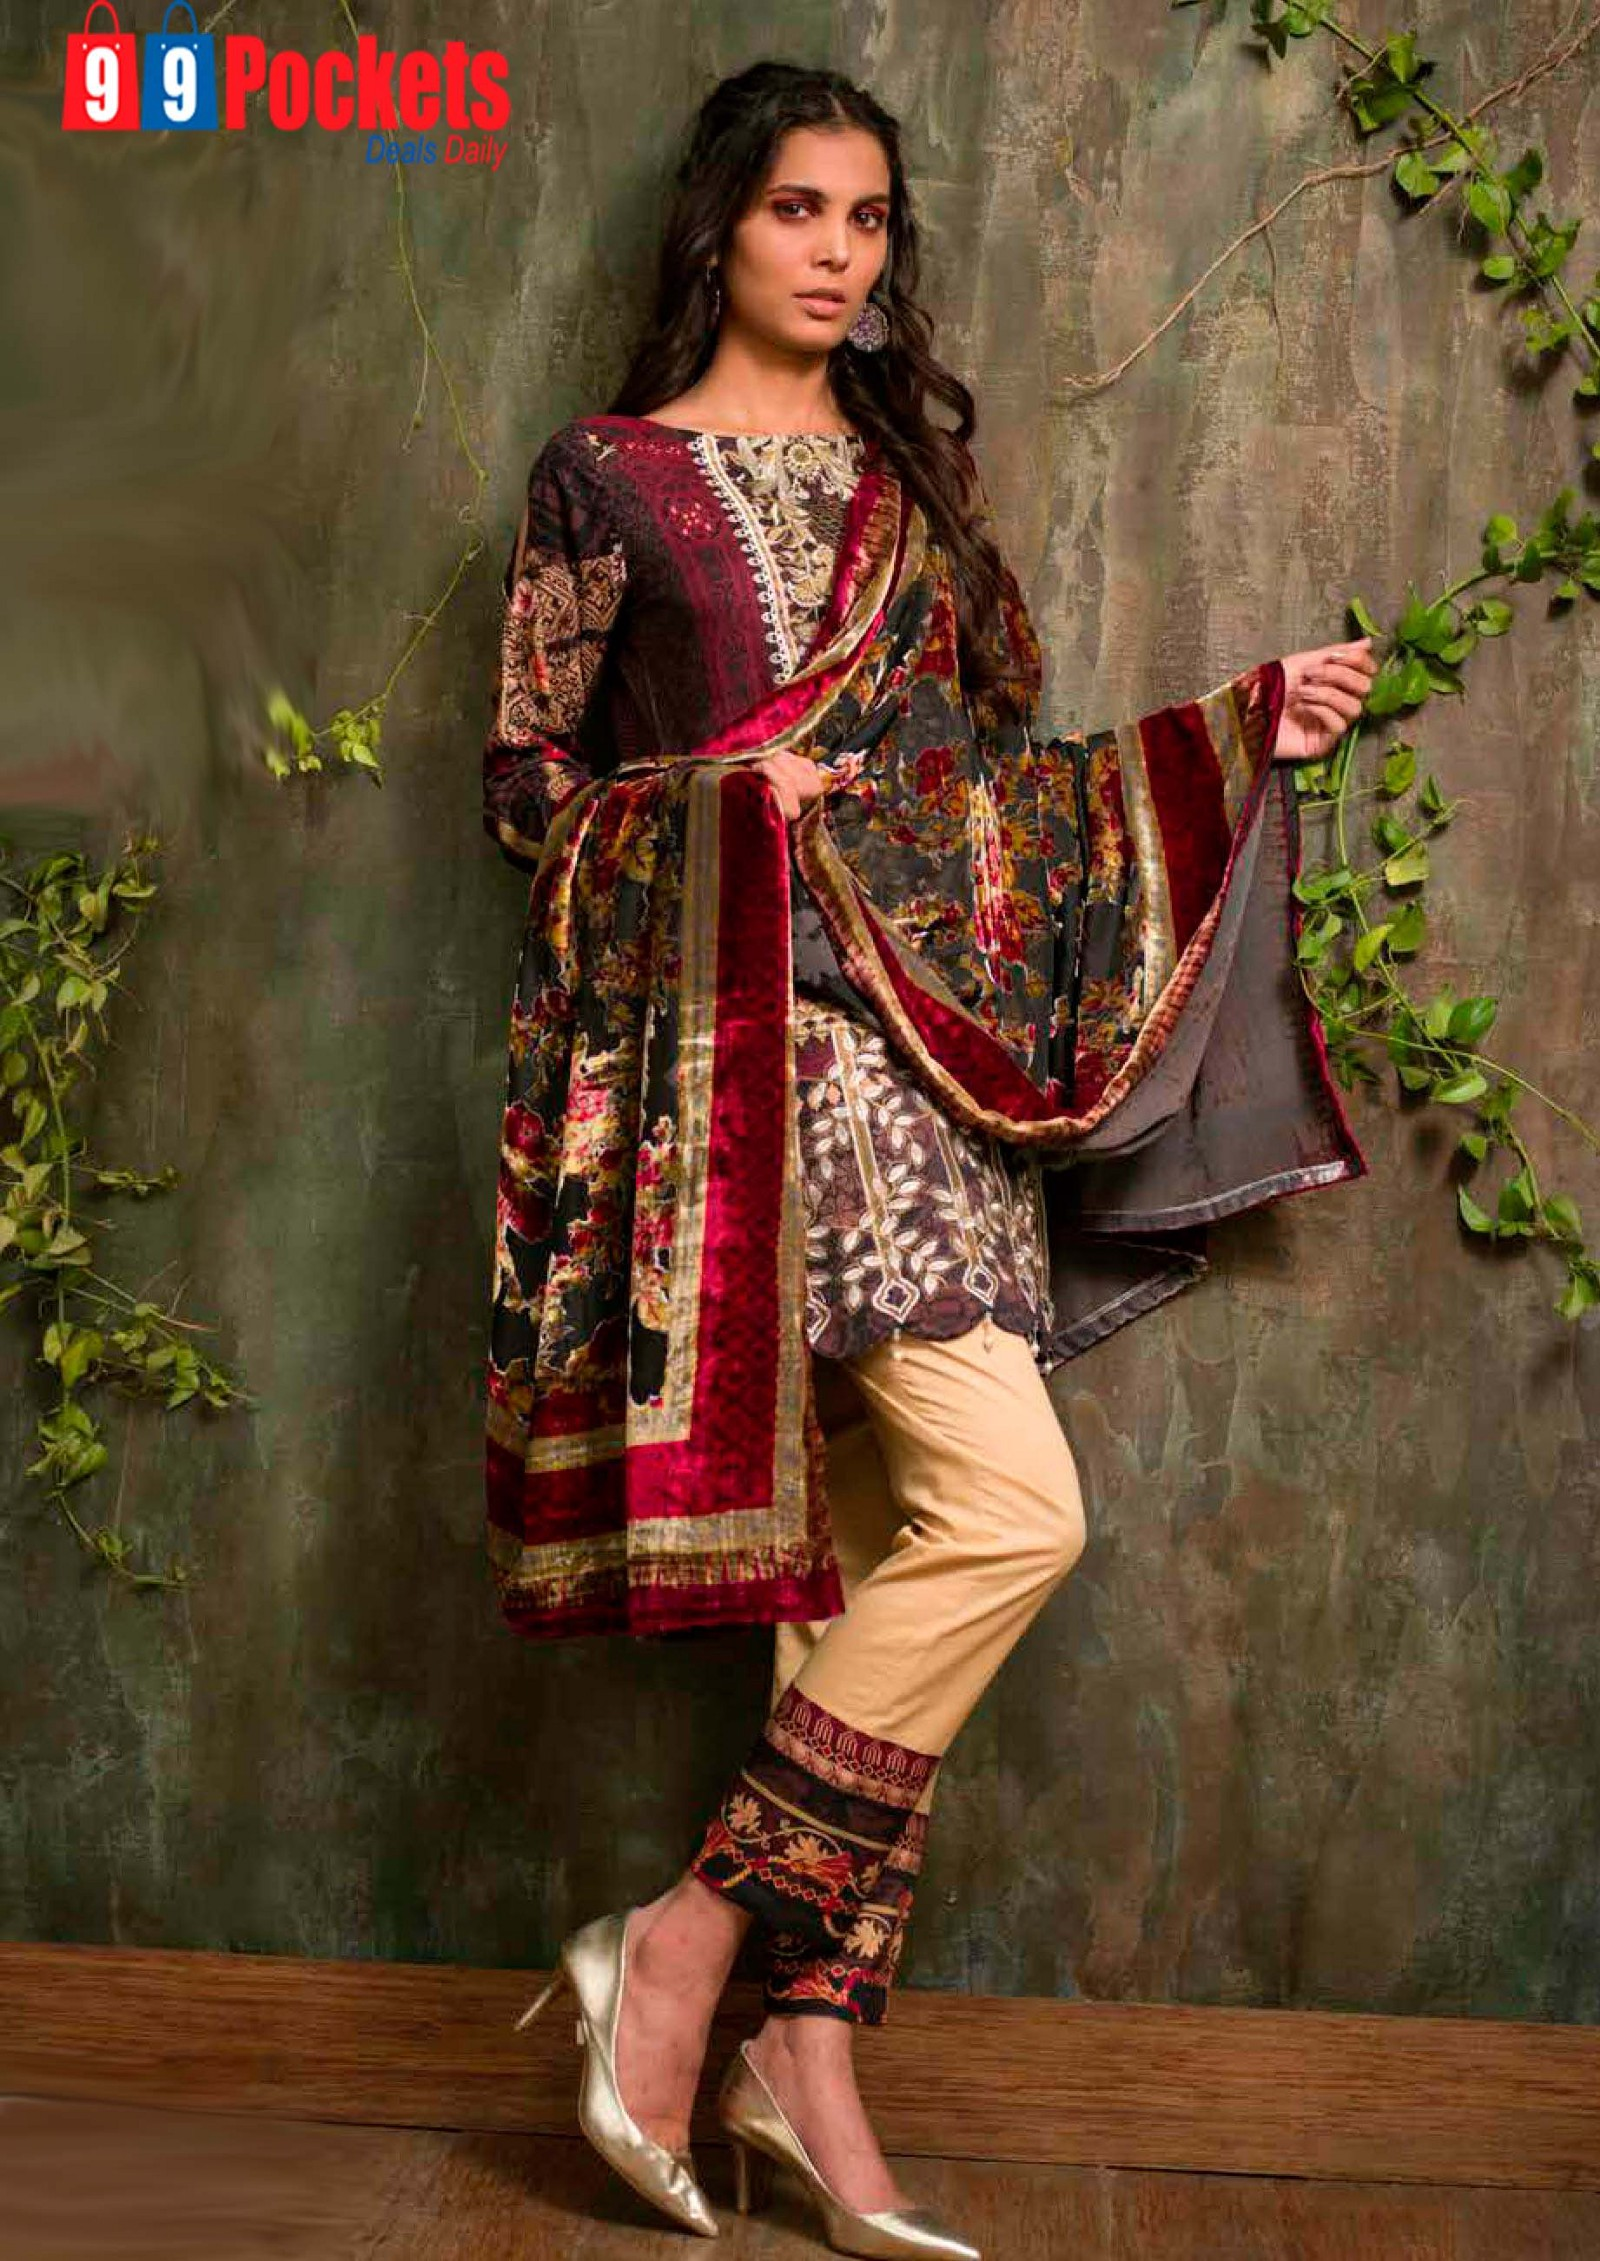 b01ce86a0d41f We have Shahista velvet silk suits for women in basic yet beautiful colors.  They are all-time clothing for the season. They look stylish yet feel warm.